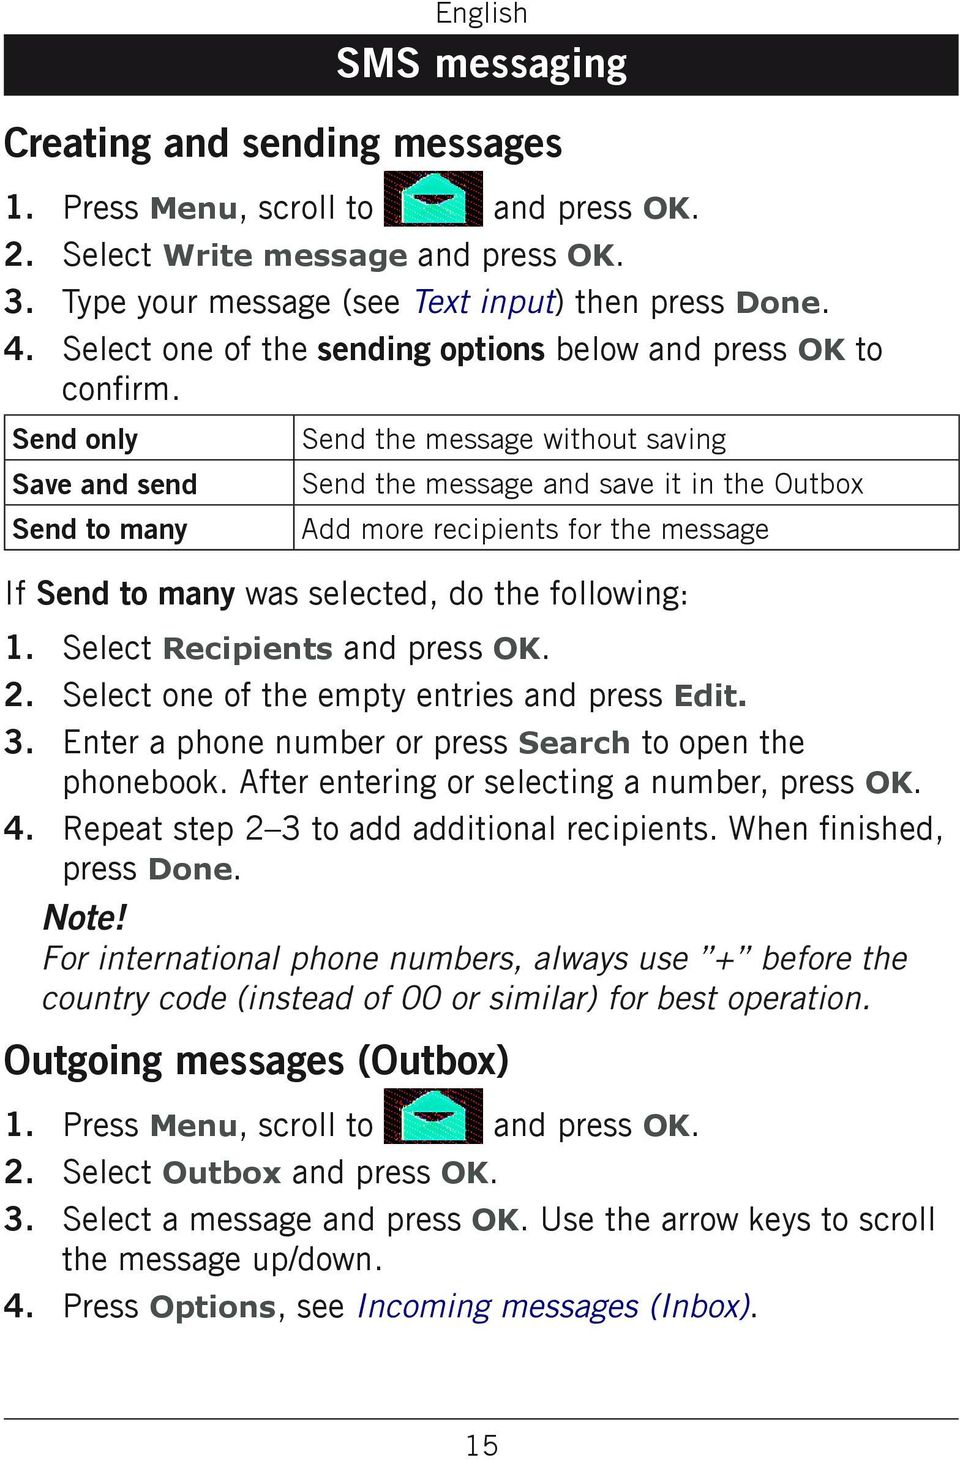 Send only Save and send Send to many Send the message without saving Send the message and save it in the Outbox Add more recipients for the message If Send to many was selected, do the following: